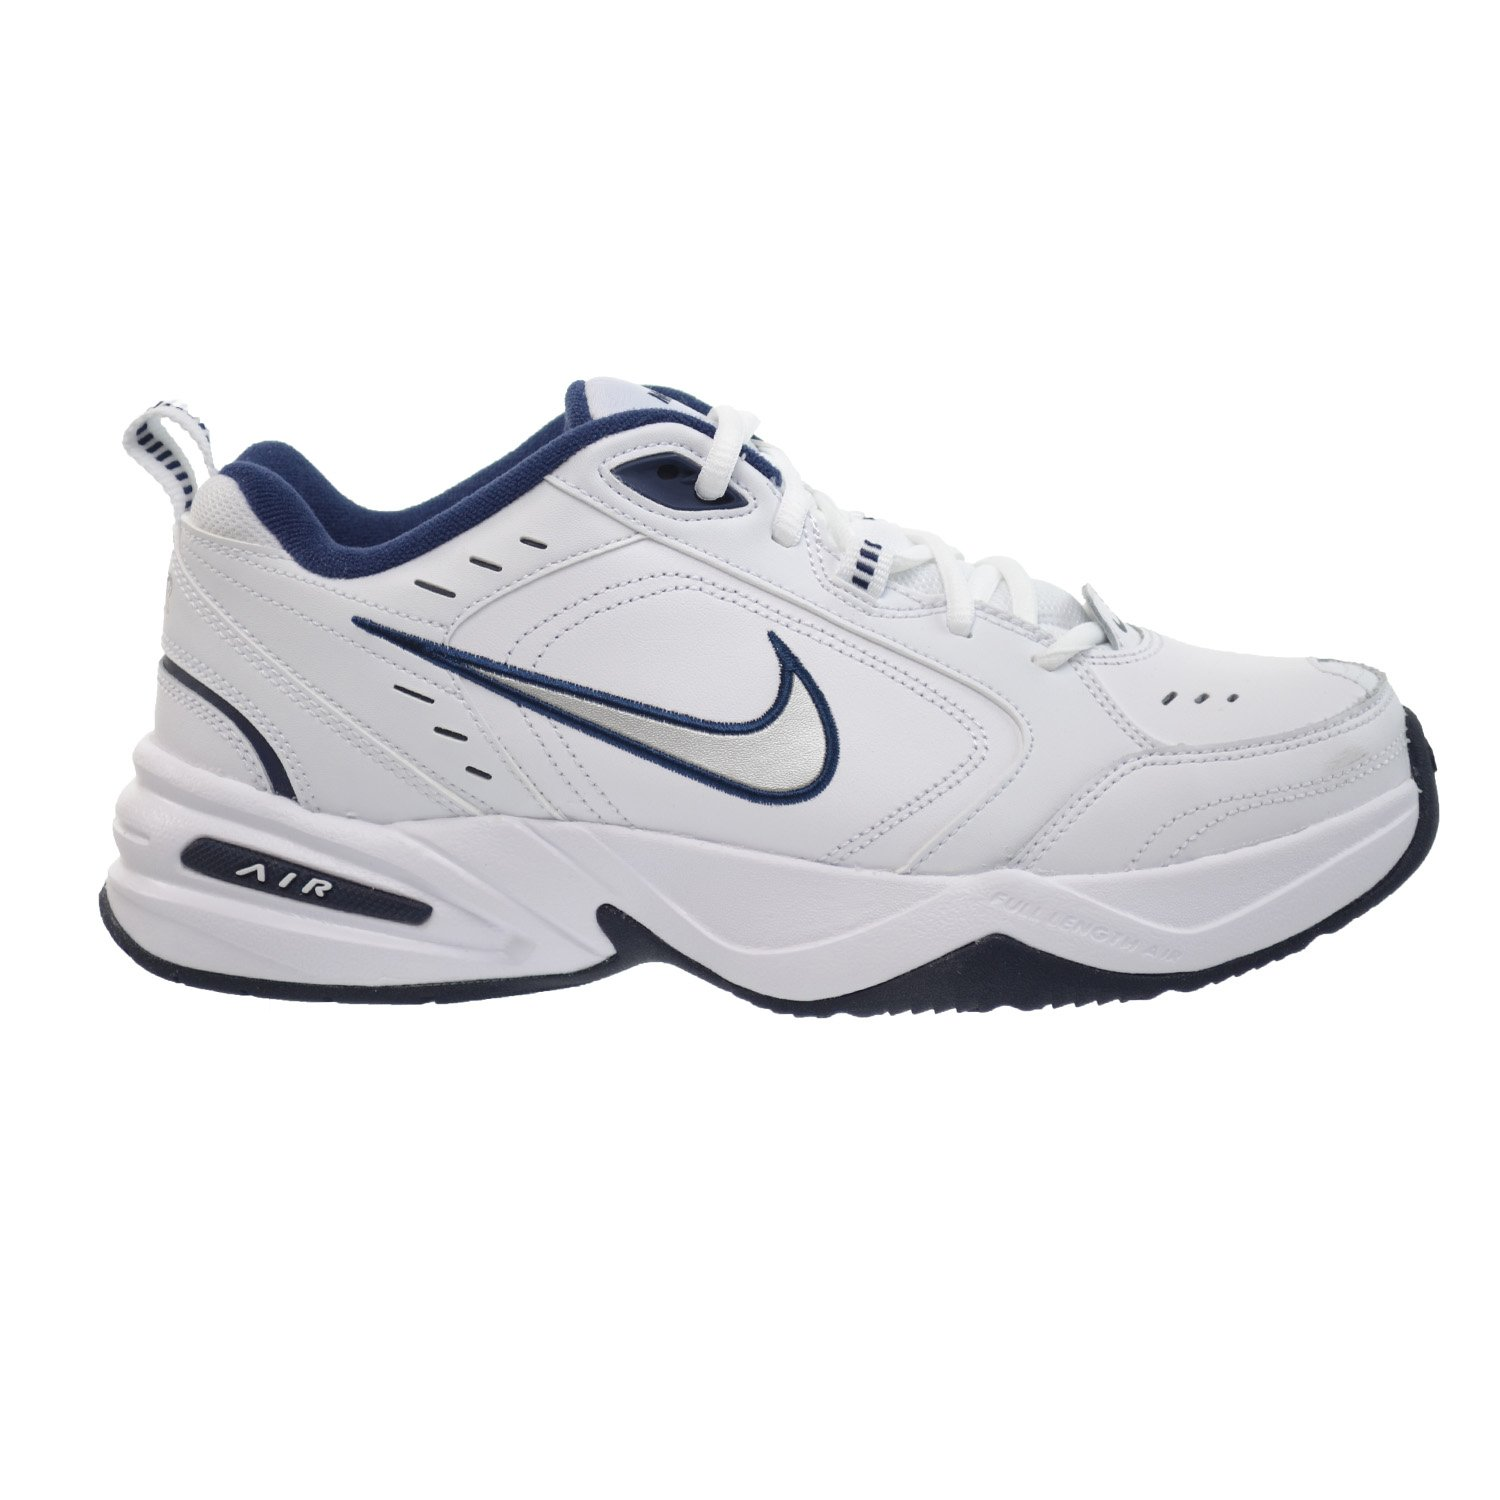 pretty nice 66e19 bd967 Nike Air Monarch IV Mens  Training Shoes White Metallic Silver-Mid Navy  415445-102 (12 D(M) US)  Amazon.co.uk  Shoes   Bags